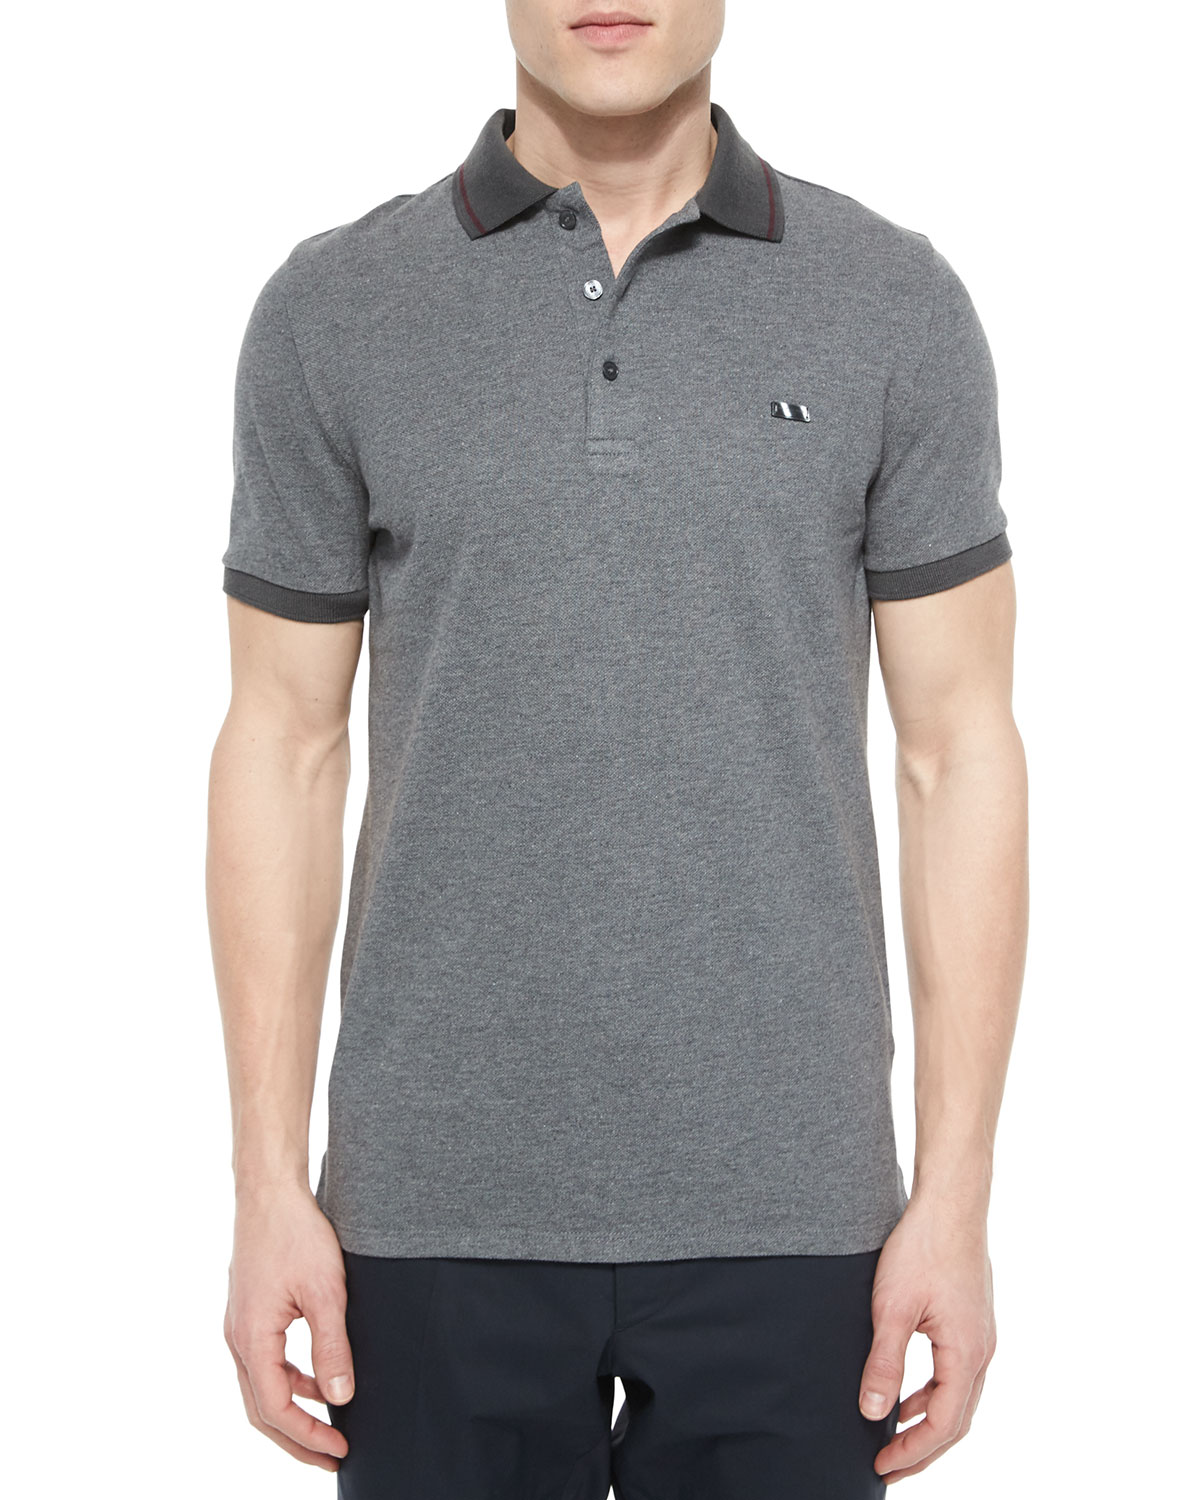 Tipped Pique Short-Sleeve Polo Shirt, Gray